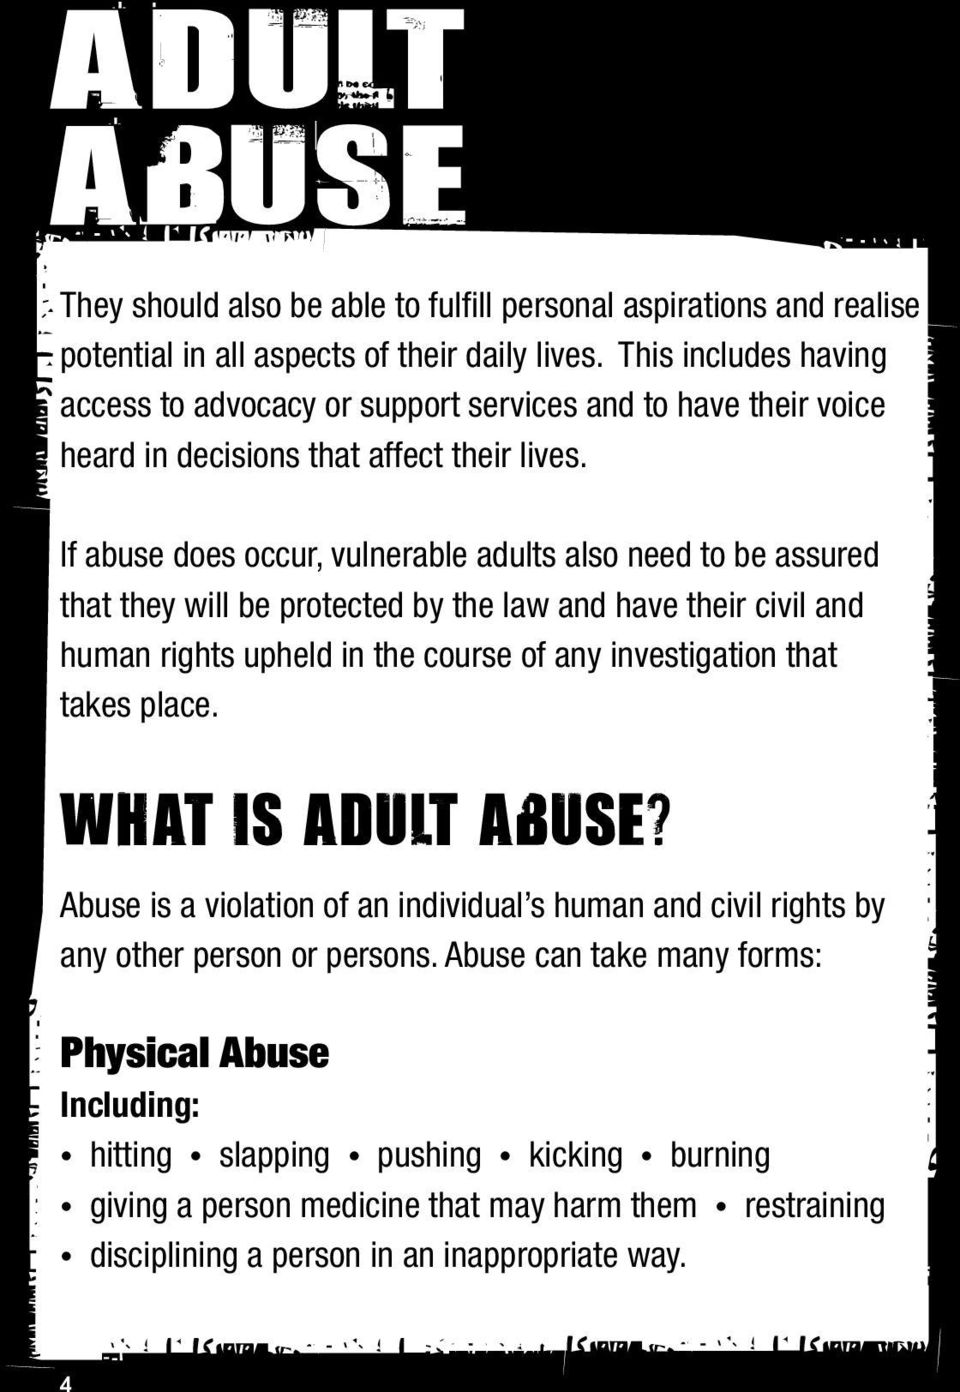 If abuse does occur, vulnerable adults also need to be assured that they will be protected by the law and have their civil and human rights upheld in the course of any investigation